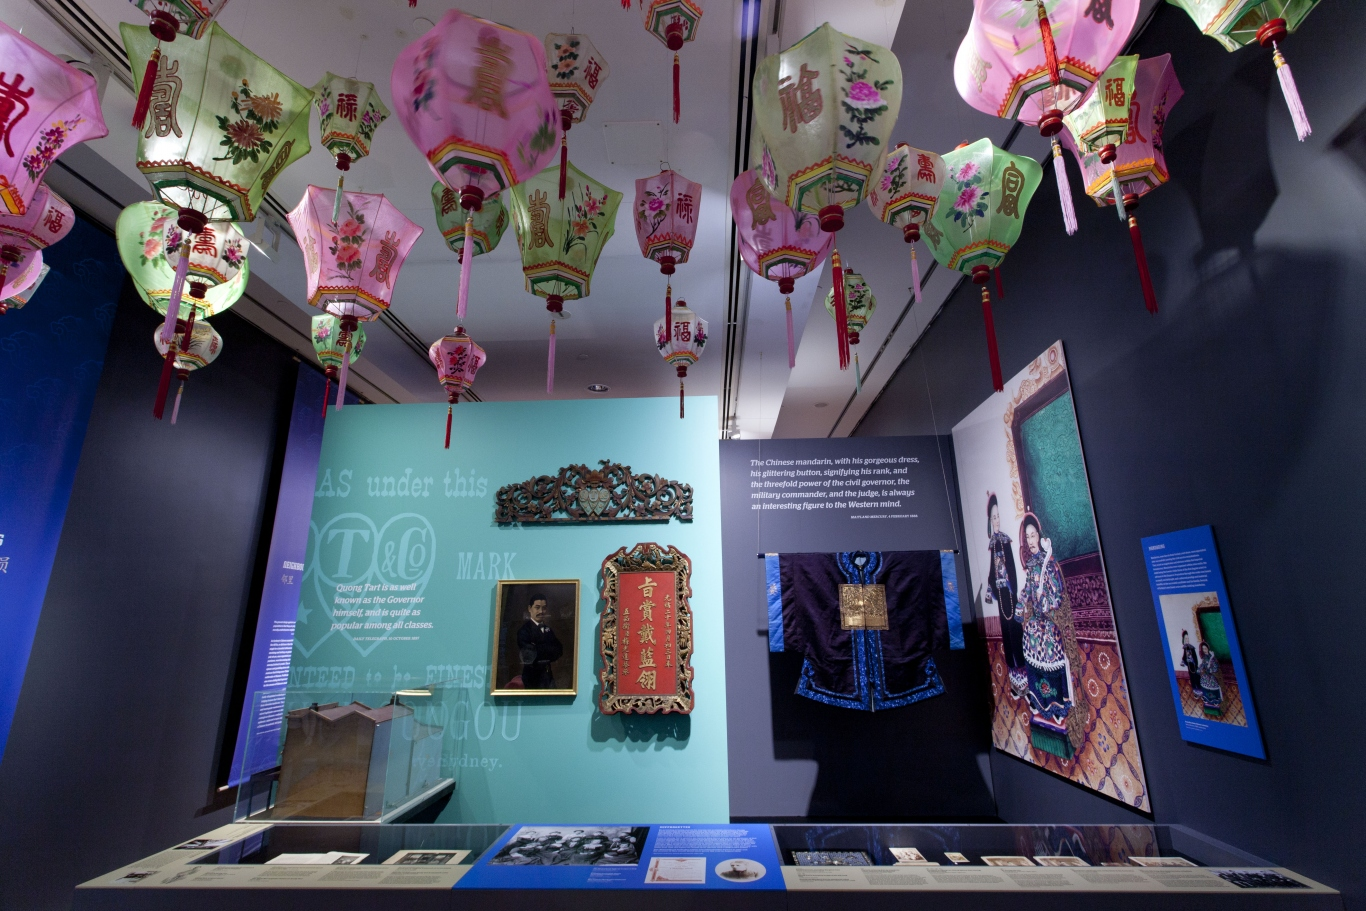 Exhibition view featuring objects in showcases and colourful Shanghai lanterns overhead